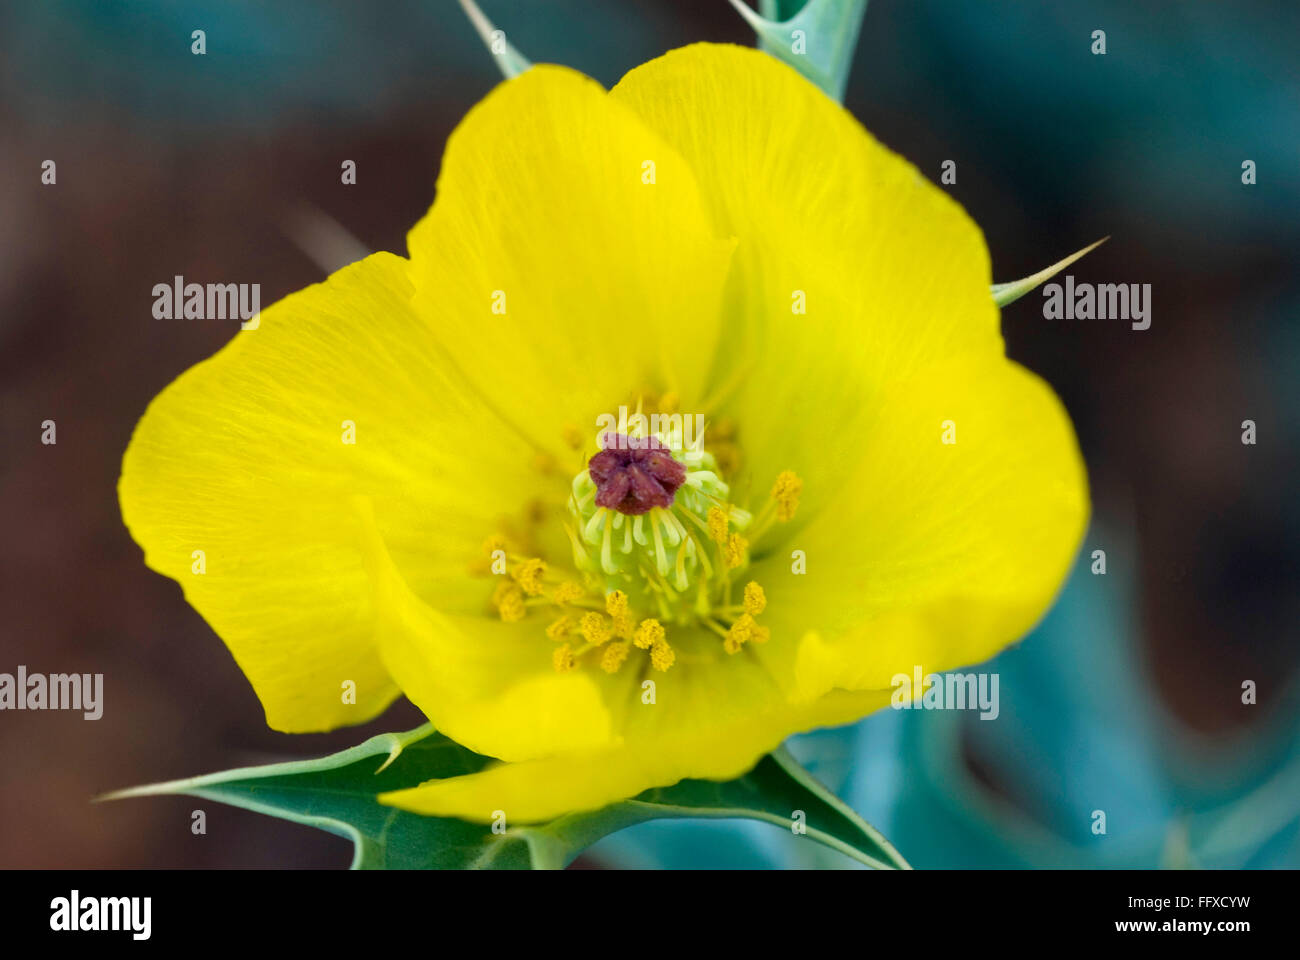 Argemone mexicana mexican prickle poppy yellow flower single - Stock Image